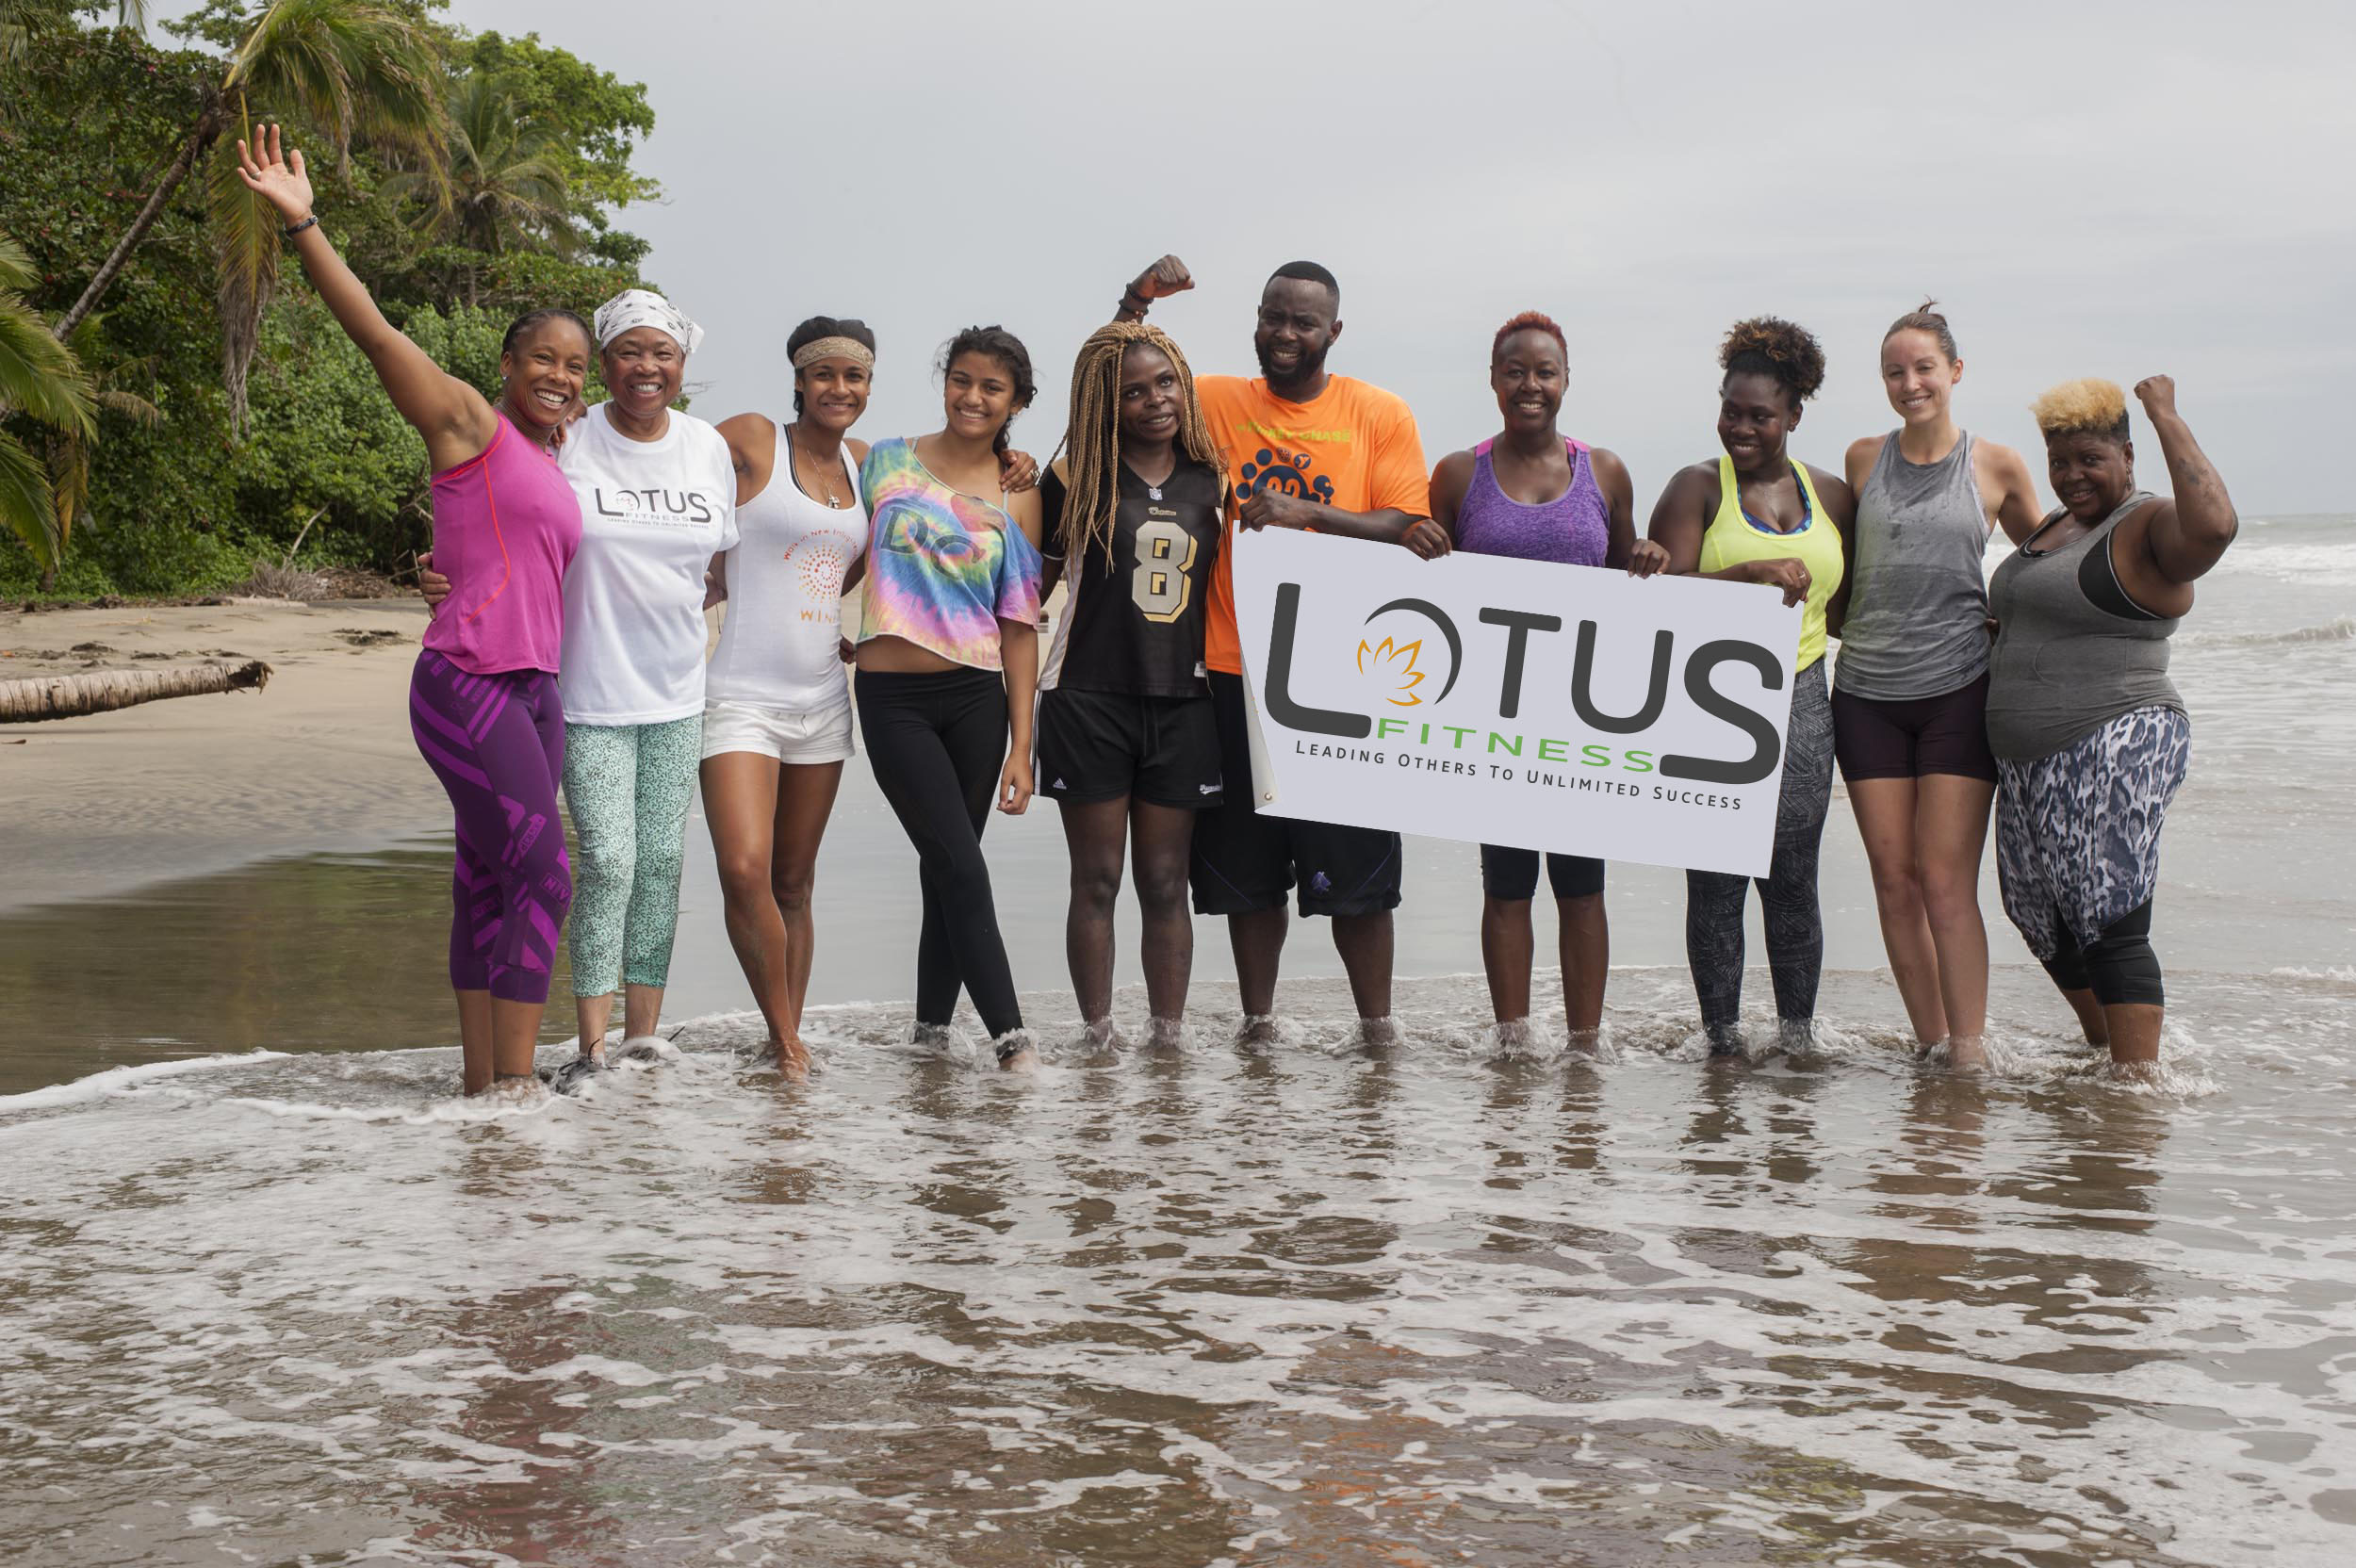 LOTUS Group on the beach